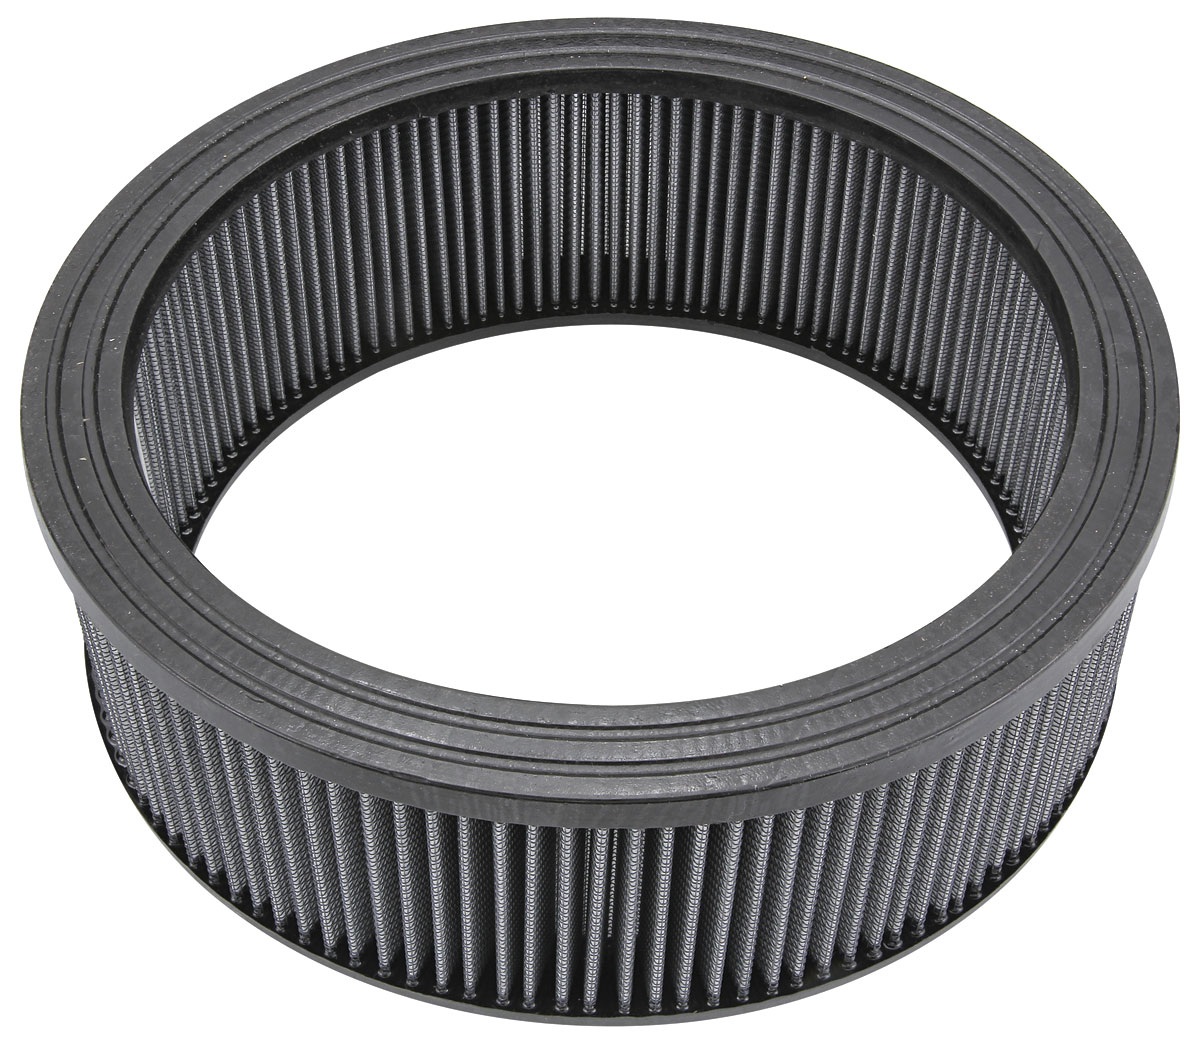 "Photo of Element, Reusable Air Filter 9.75"" x 3.45"", w/out AC - Corvair"